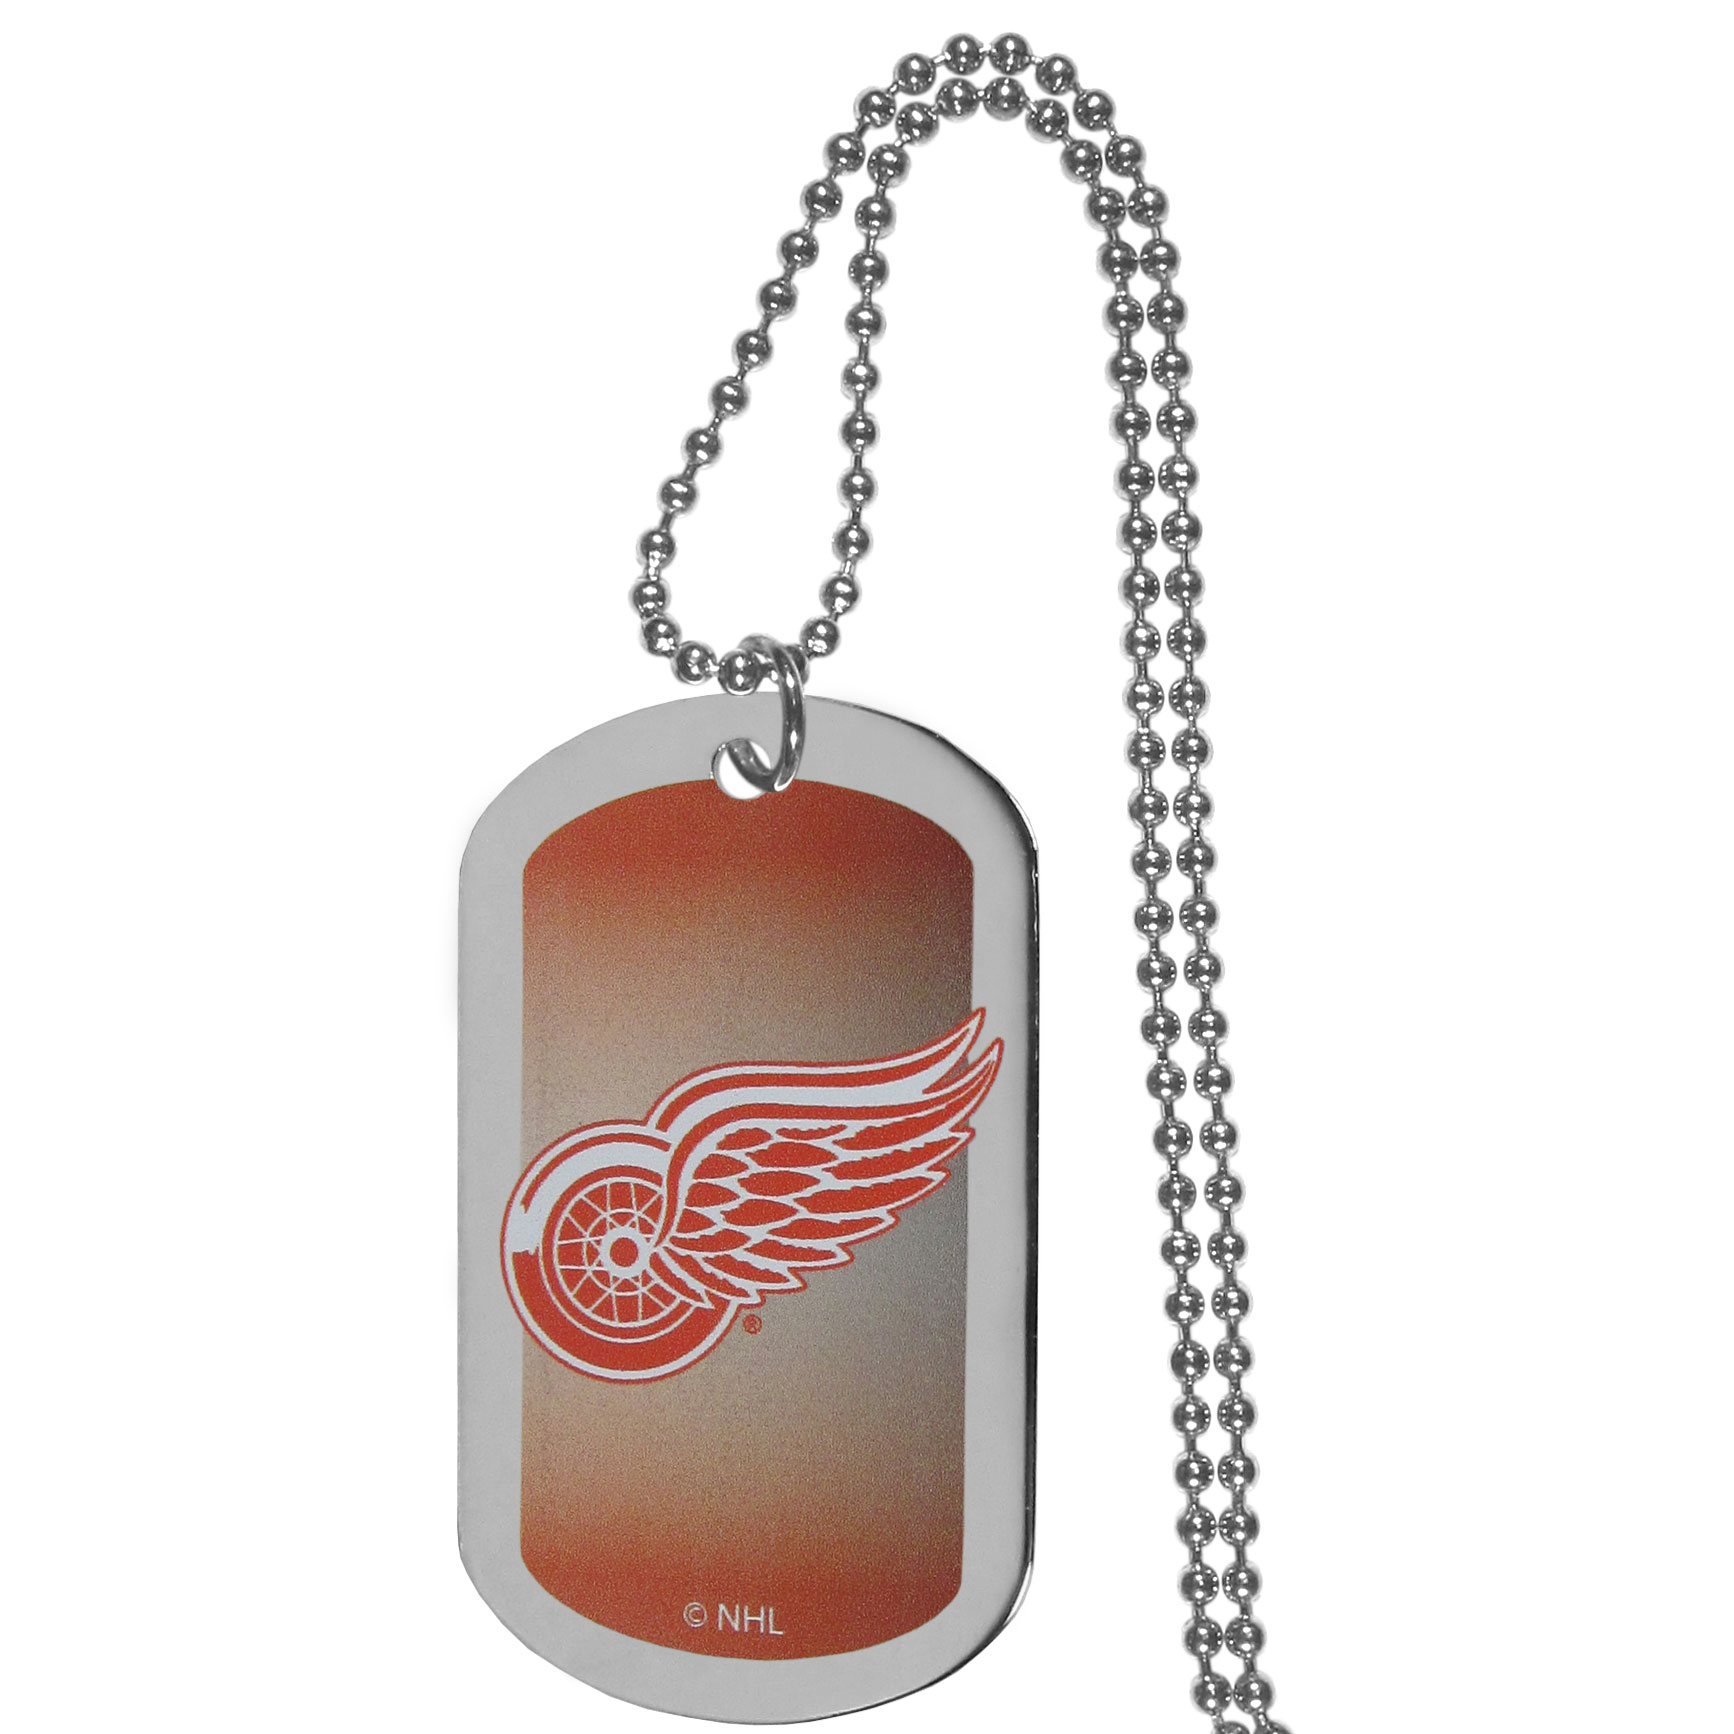 Detroit Red Wings® Team Tag Necklace - Dog tag necklaces are a fashion statement that is here to stay. The sporty version of the classic tag features a gradient print in team colors featuring a full color team logo over a high polish tag to create a bold and sporty look. The tag comes on a 26 inch ball chain with a ball and joint clasp. Any Detroit Red Wings® would be proud to wear this attractive fashion accessory.